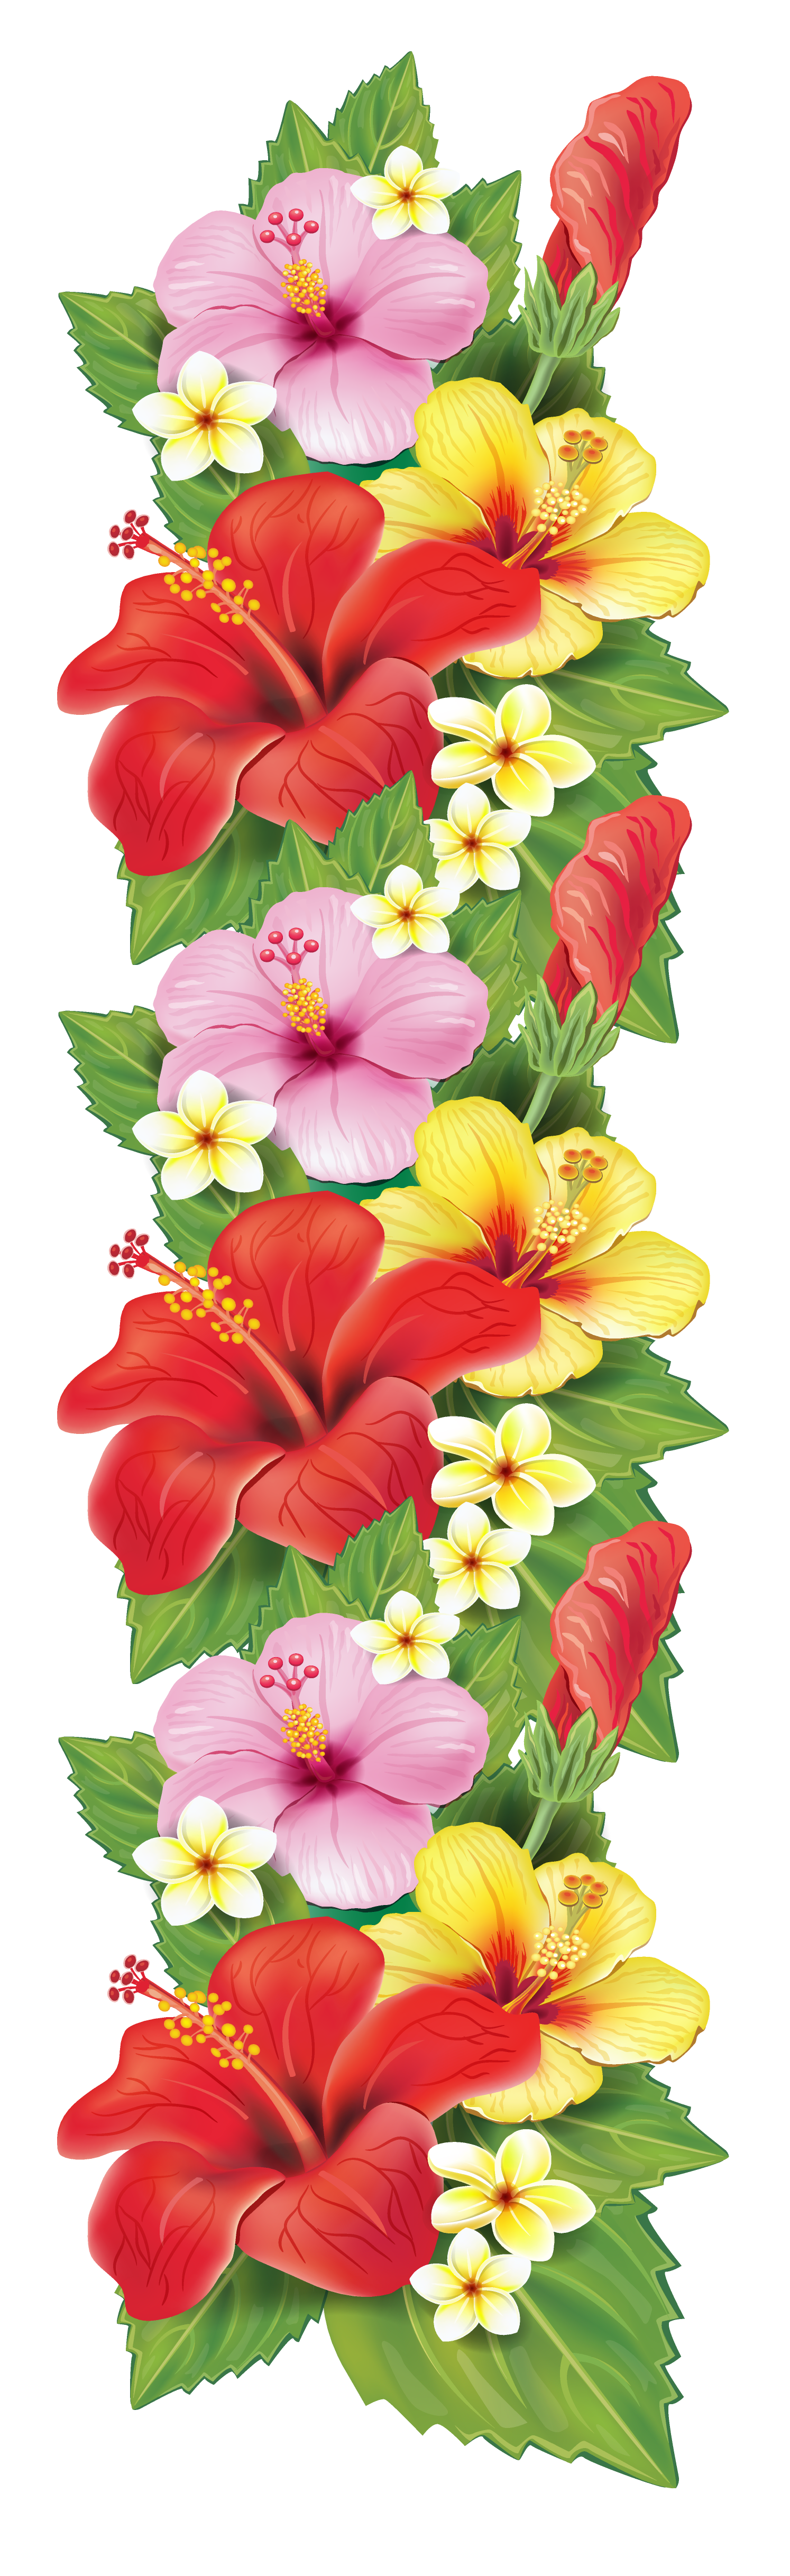 Moana flower clipart picture royalty free library Exotic Flowers Decoration PNG Clipart | Gallery Yopriceville - High ... picture royalty free library